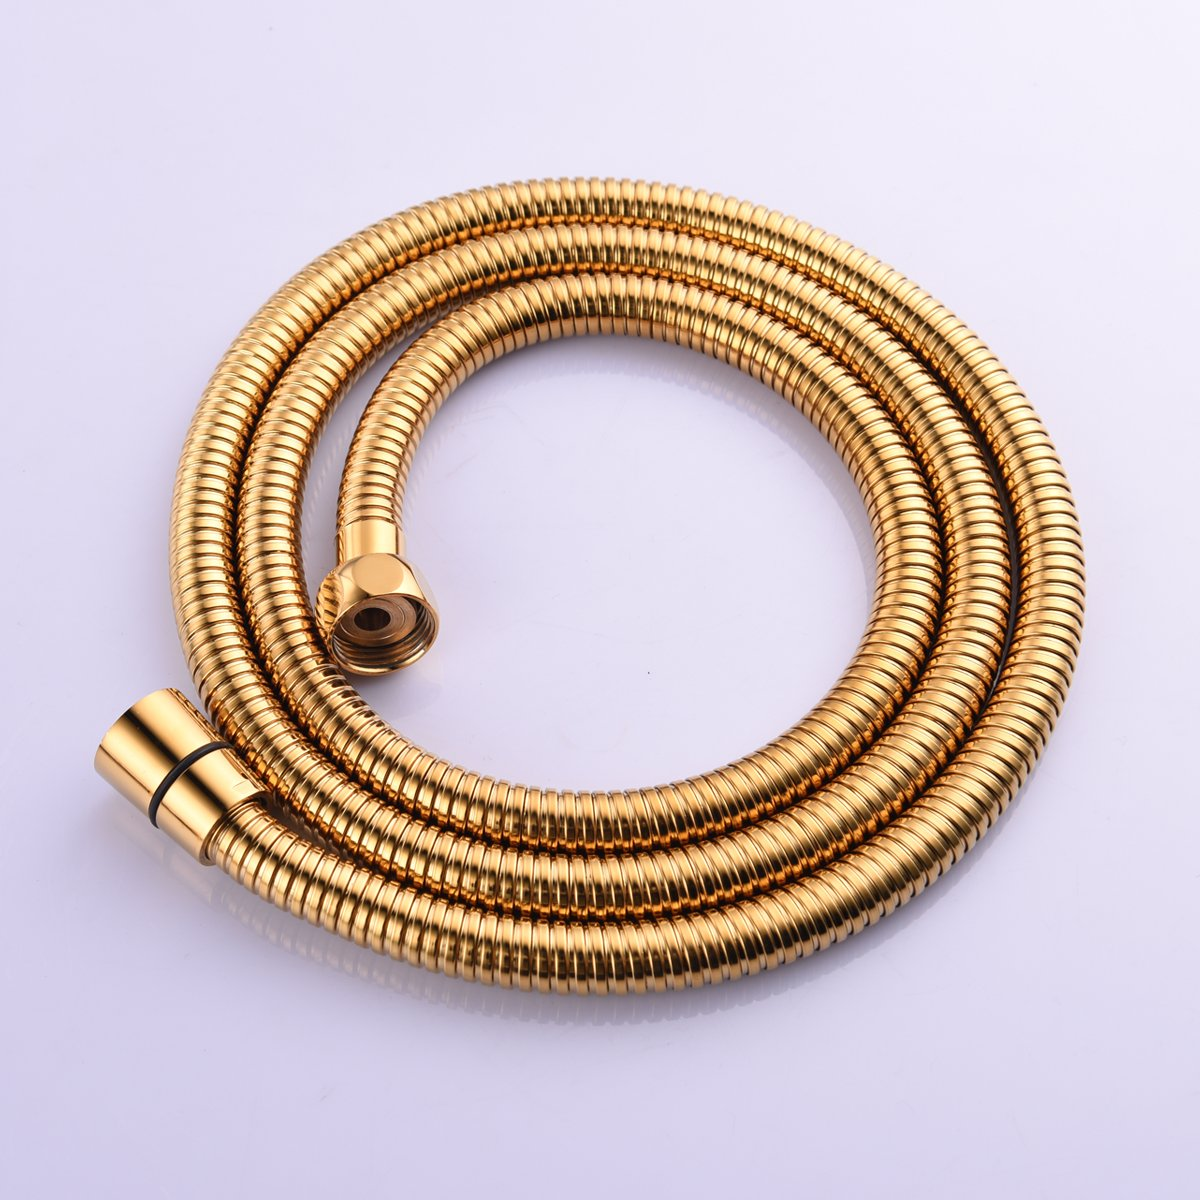 CIENCIA 2m(78-Inch)Anti-kink Flexible Gold Shower Hose Stainless Steel with Solid Brass Connector FHA019J